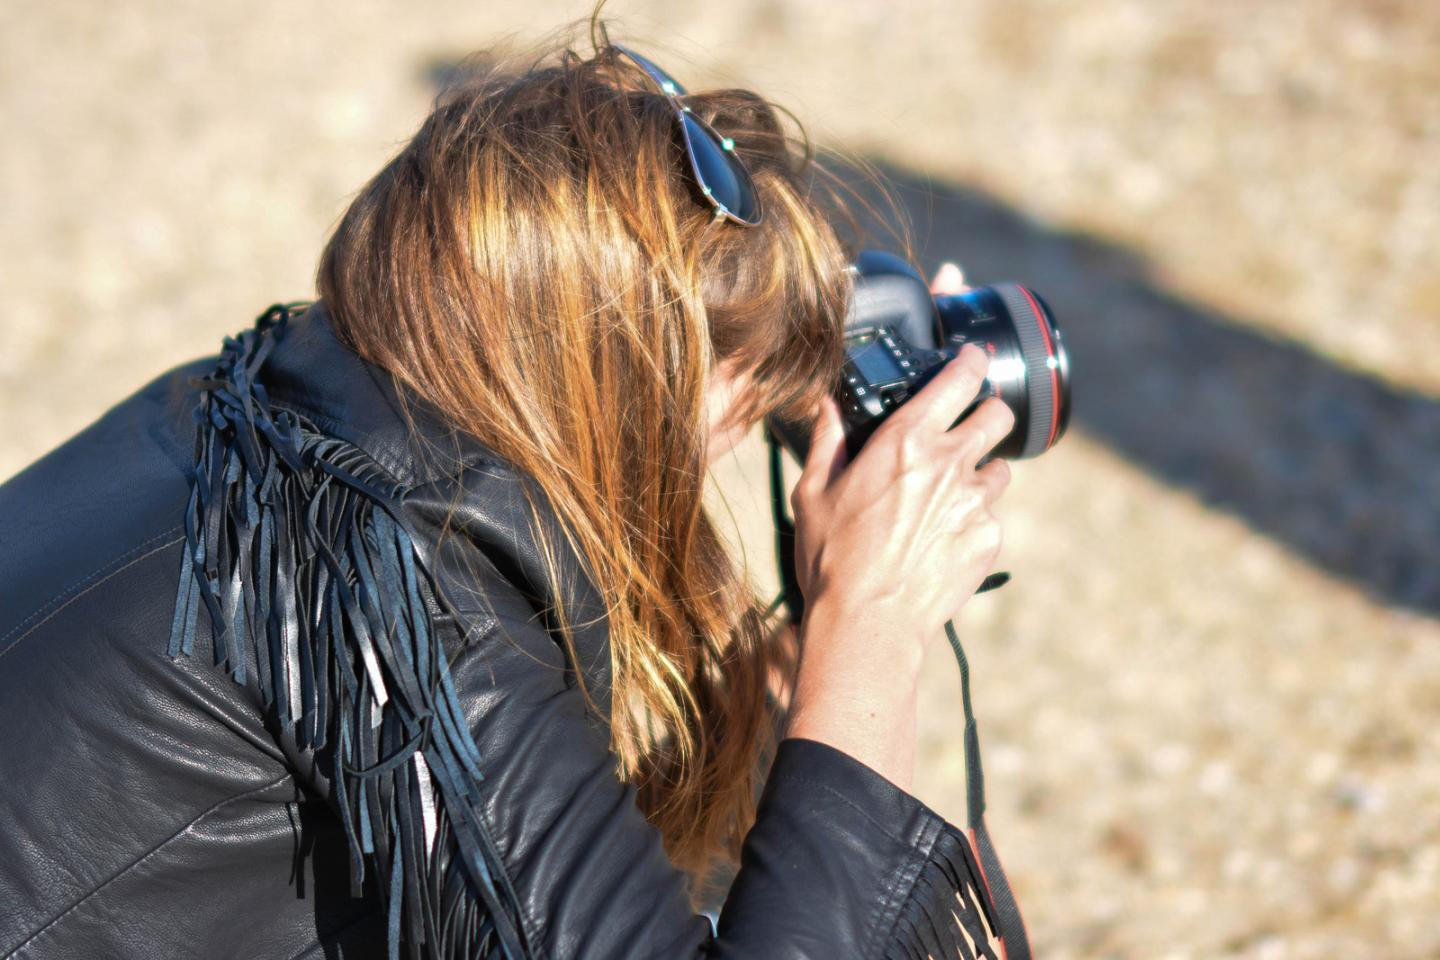 EJSTYLE - Emma Hill wears Next faux leather black fringe jacket, blogger in action